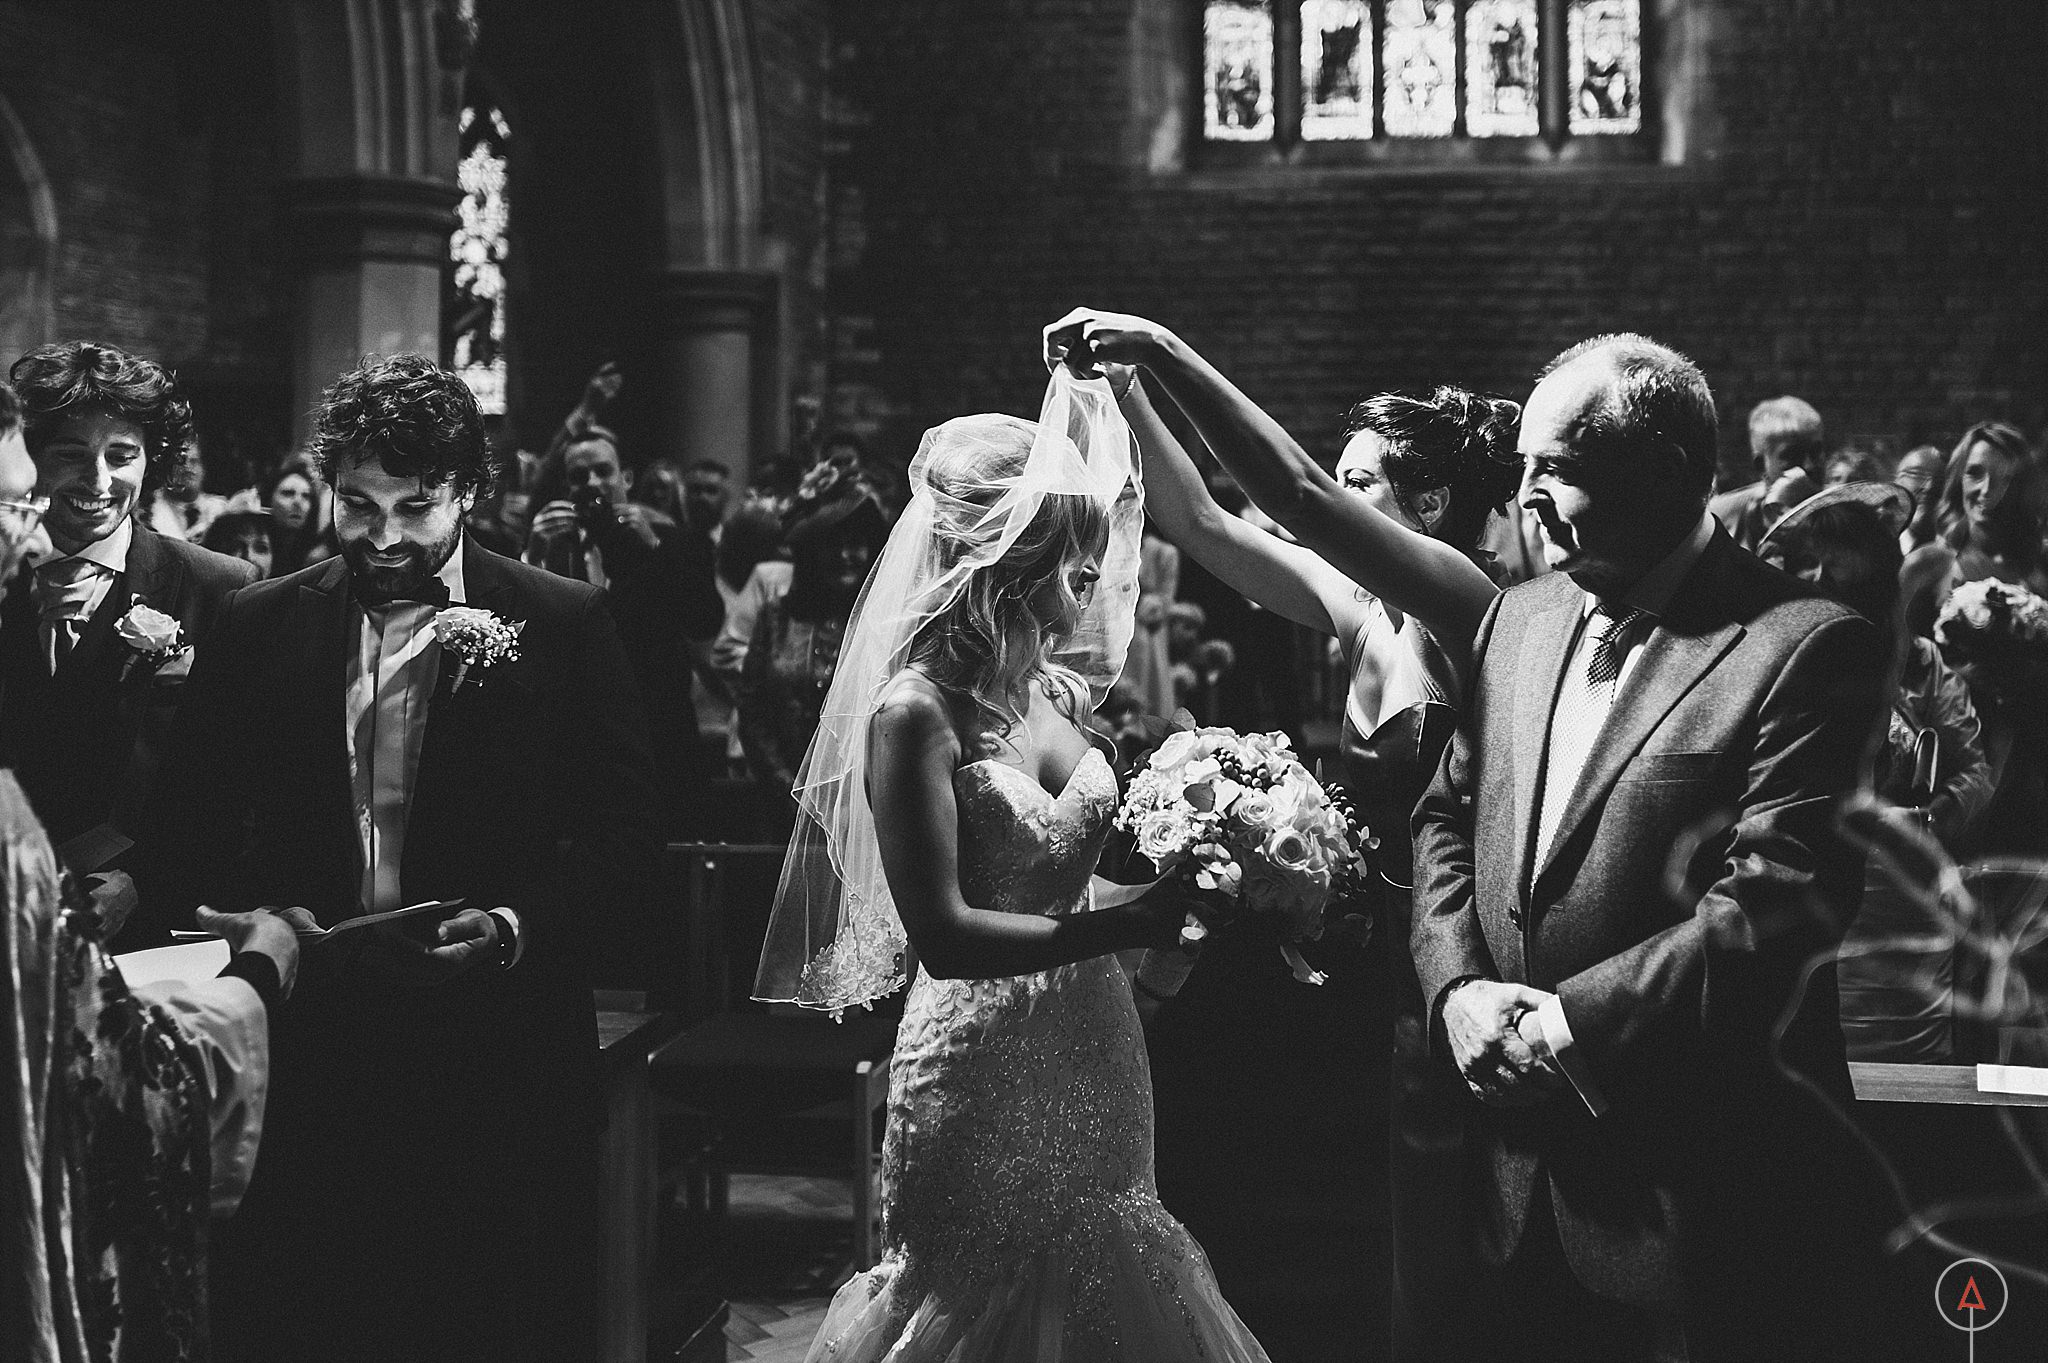 cardiff-wedding-photographer-aga-tomaszek_0363